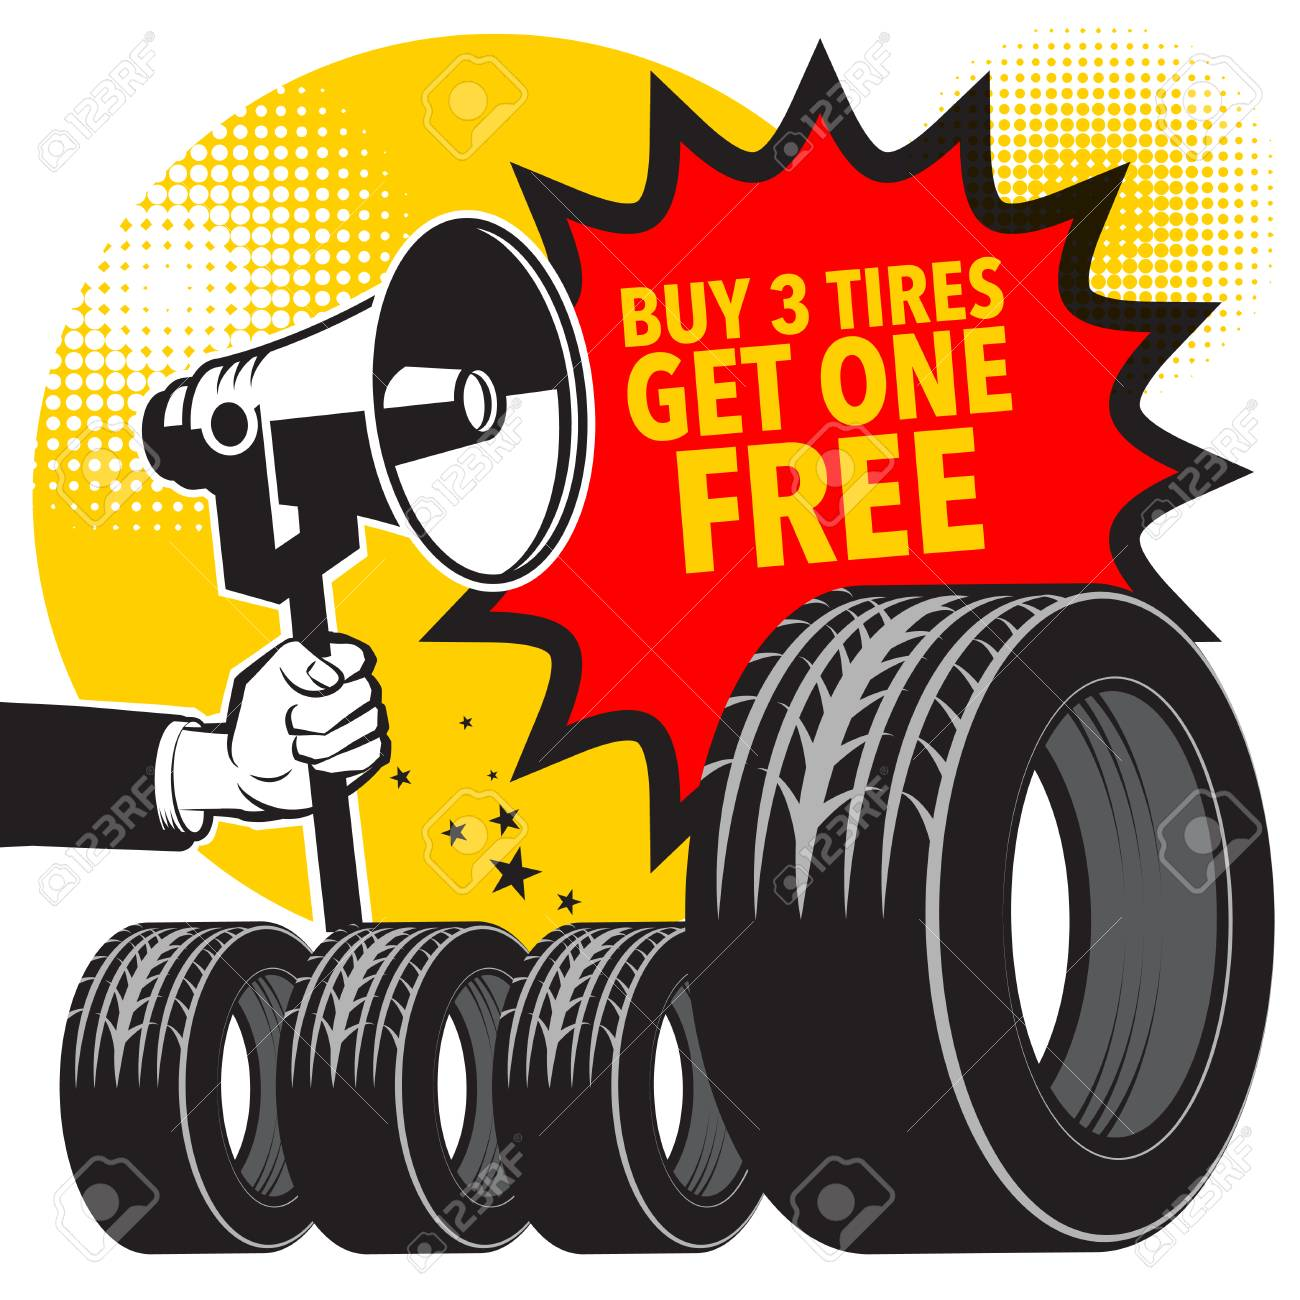 Buy 3 Get 1 Free Tires >> Tire Service Or Garage Poster With Text Buy 3 Get 1 Free New